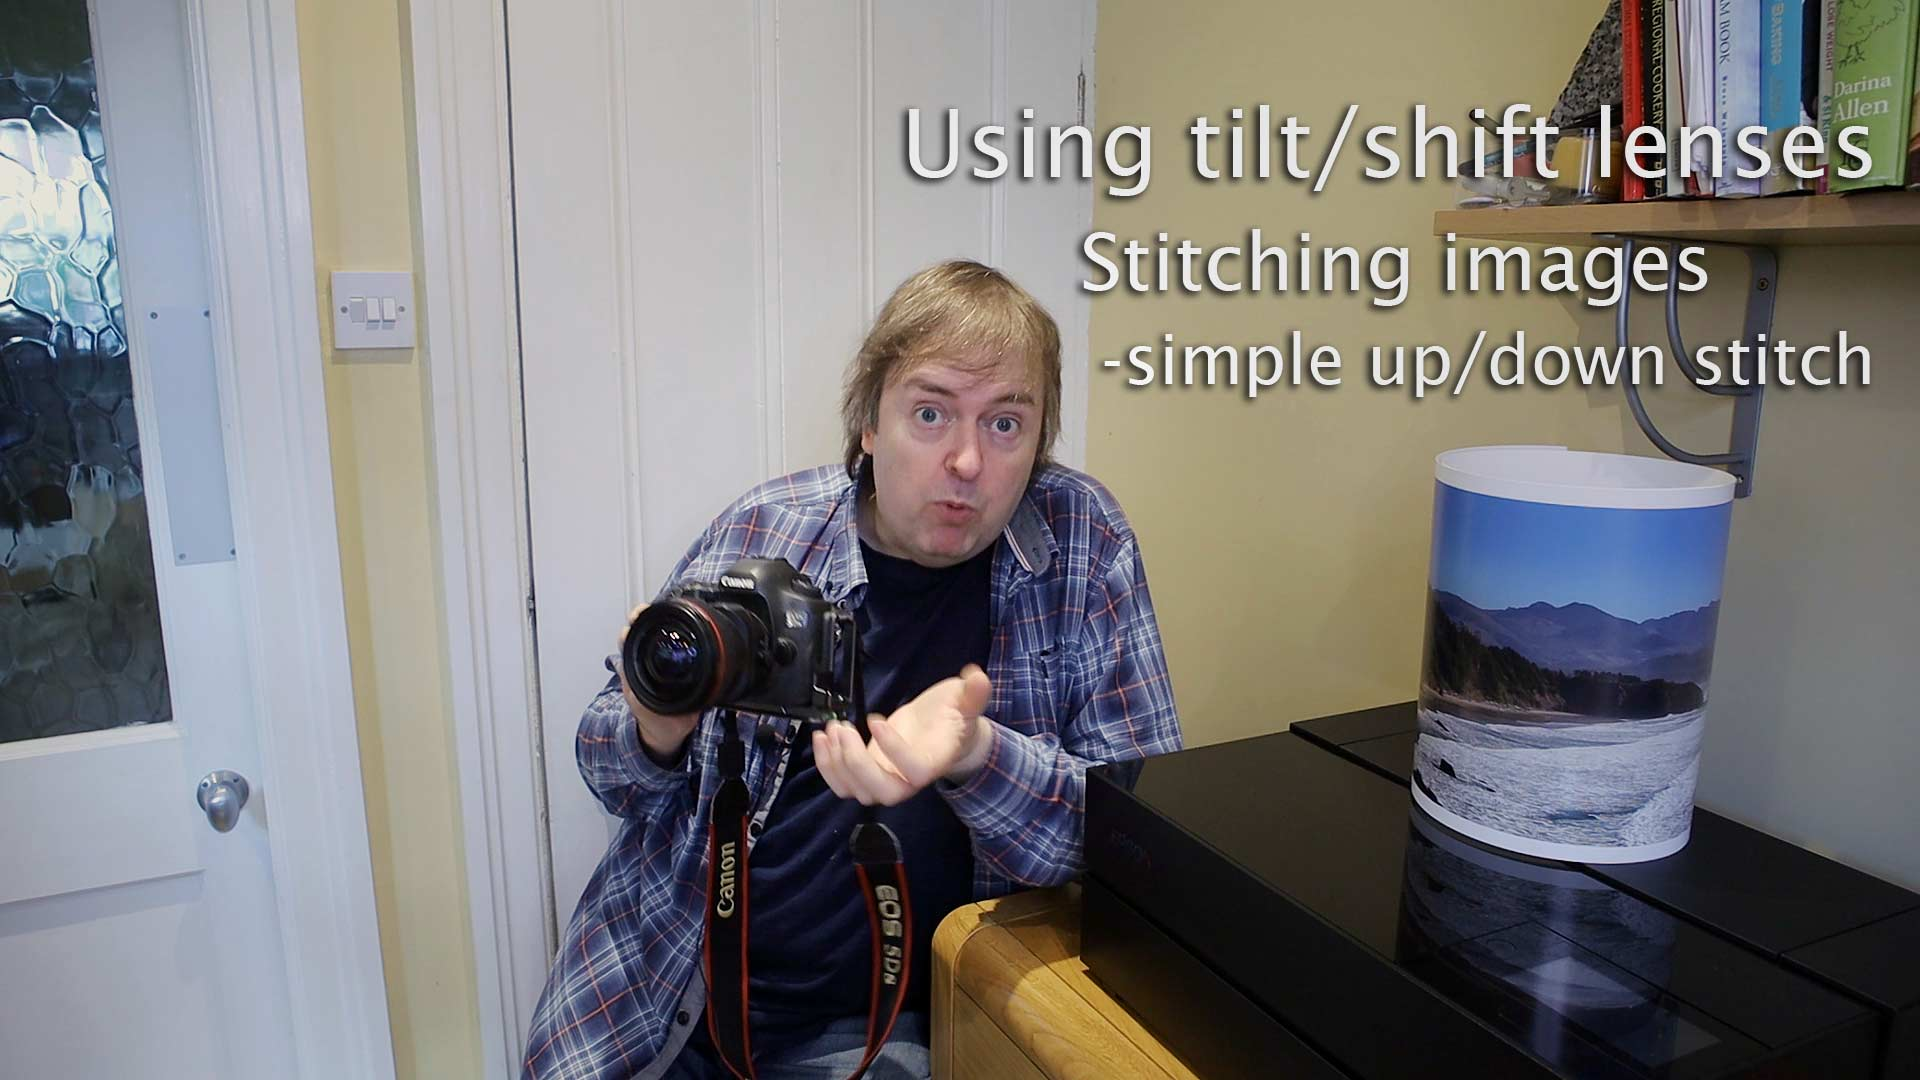 stitching-images taken with shift